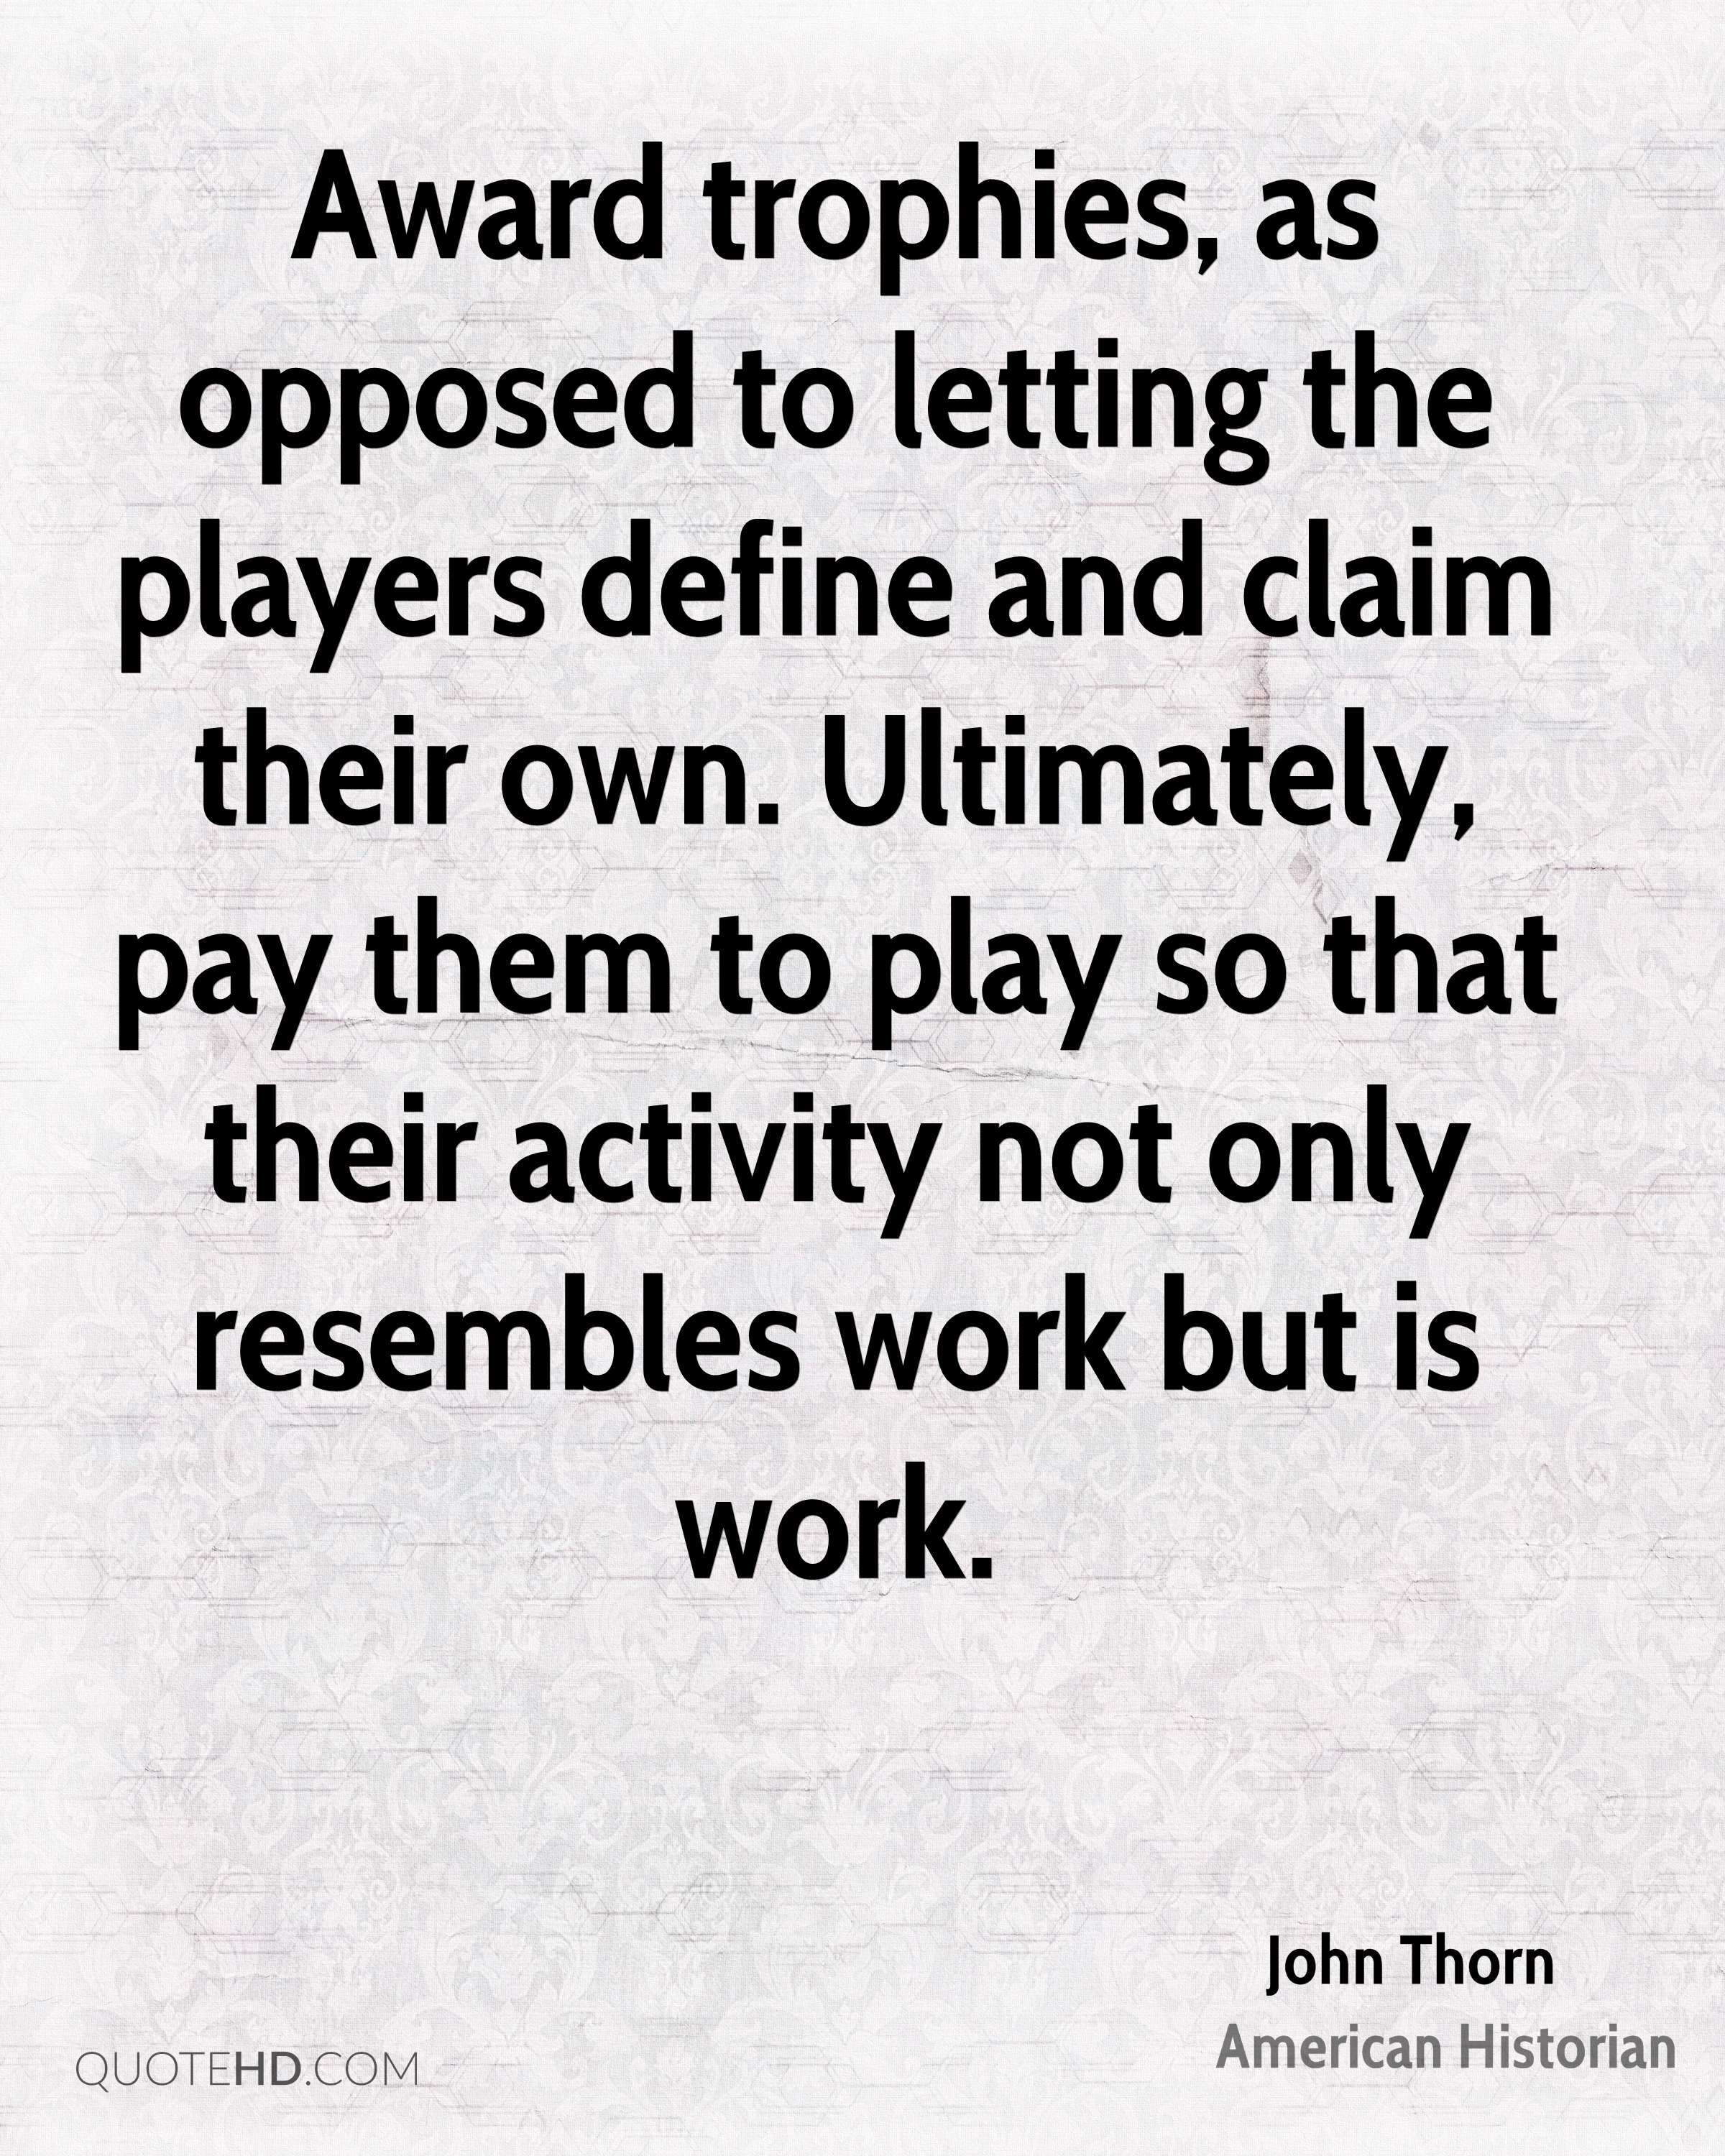 Award trophies, as opposed to letting the players define and claim their own. Ultimately, pay them to play so that their activity not only resembles work but is work.